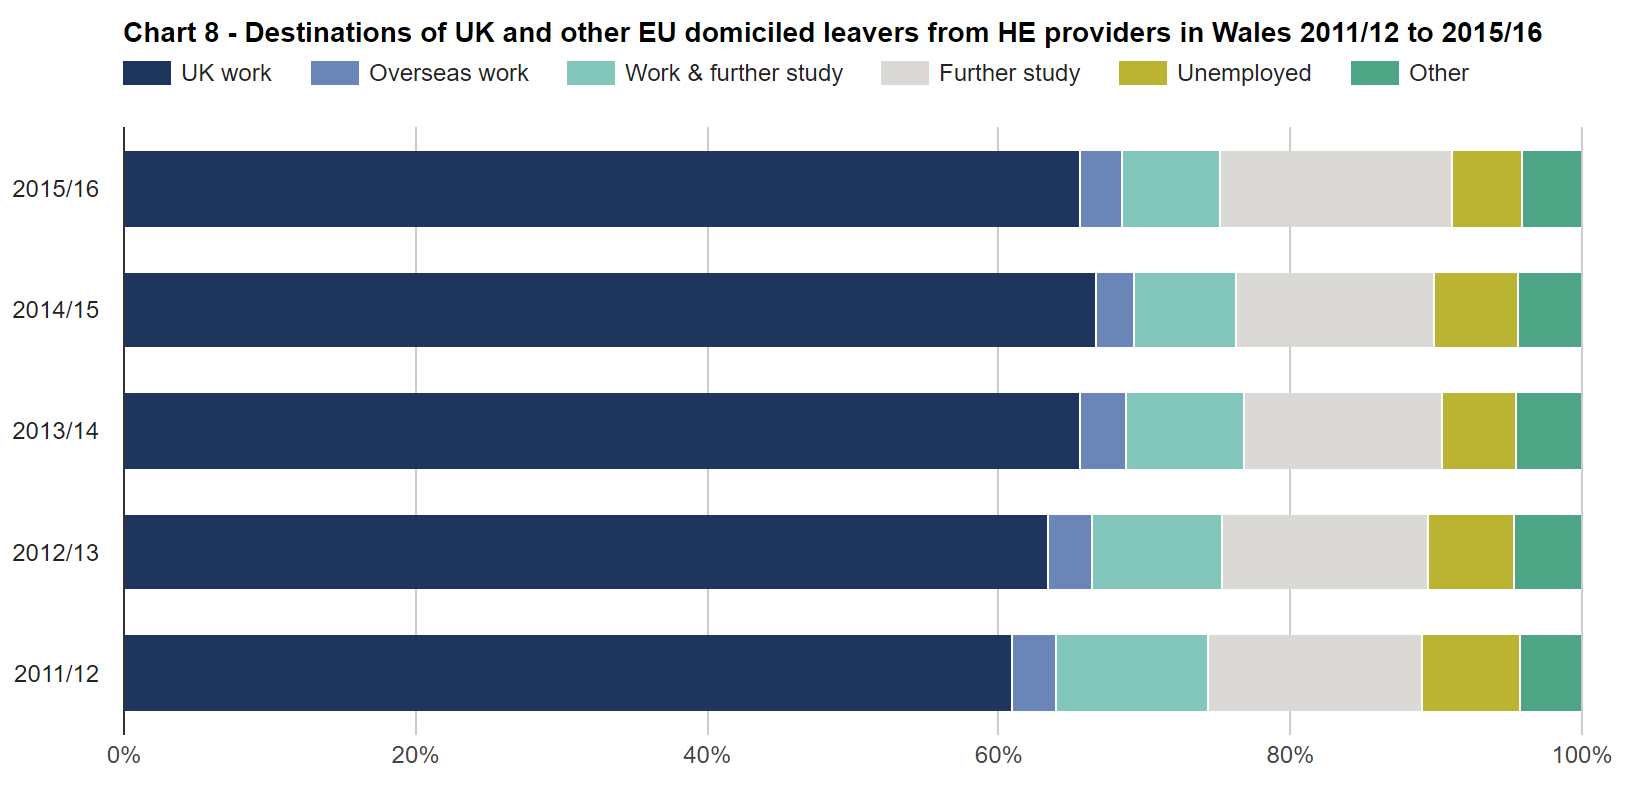 SFR245: Chart 8 - Destinations of UK and other EU domiciled leavers from HE providers in Wales 2011/12 to 2015/16